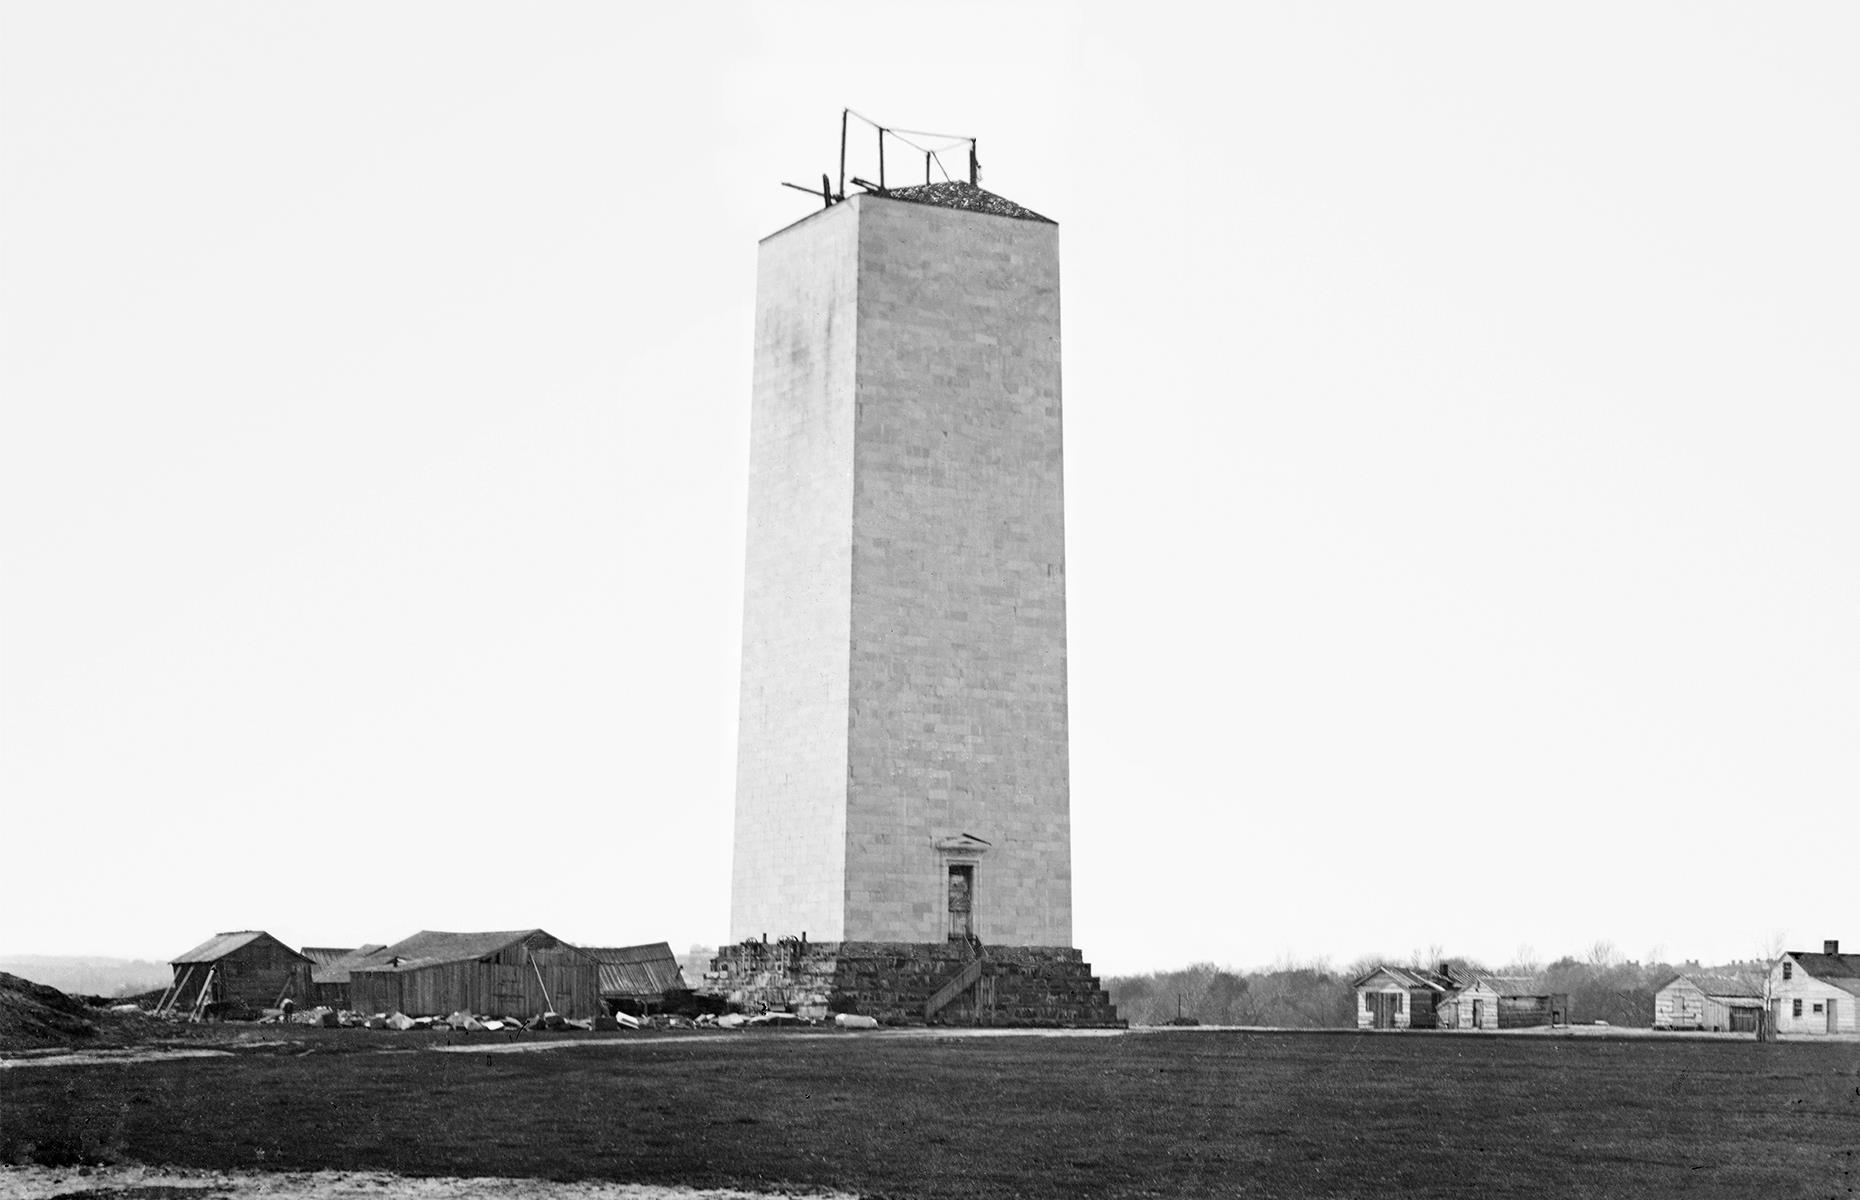 Slide 30 of 41: This enormous marble obelisk soars to 555 feet (169m) and was built as a tribute to first president George Washington. Construction of the monument – which was originally intended to comprise a large pantheon as well as an obelisk – began in 1848, but funds soon dwindled. Work halted and wouldn't begin again until after the Civil War. It recommenced in the 1870s, under the eye of the Ulysses S. Grant, and the landmark was finally dedicated in 1885. It's seen here, partially completed, in the 1860s.